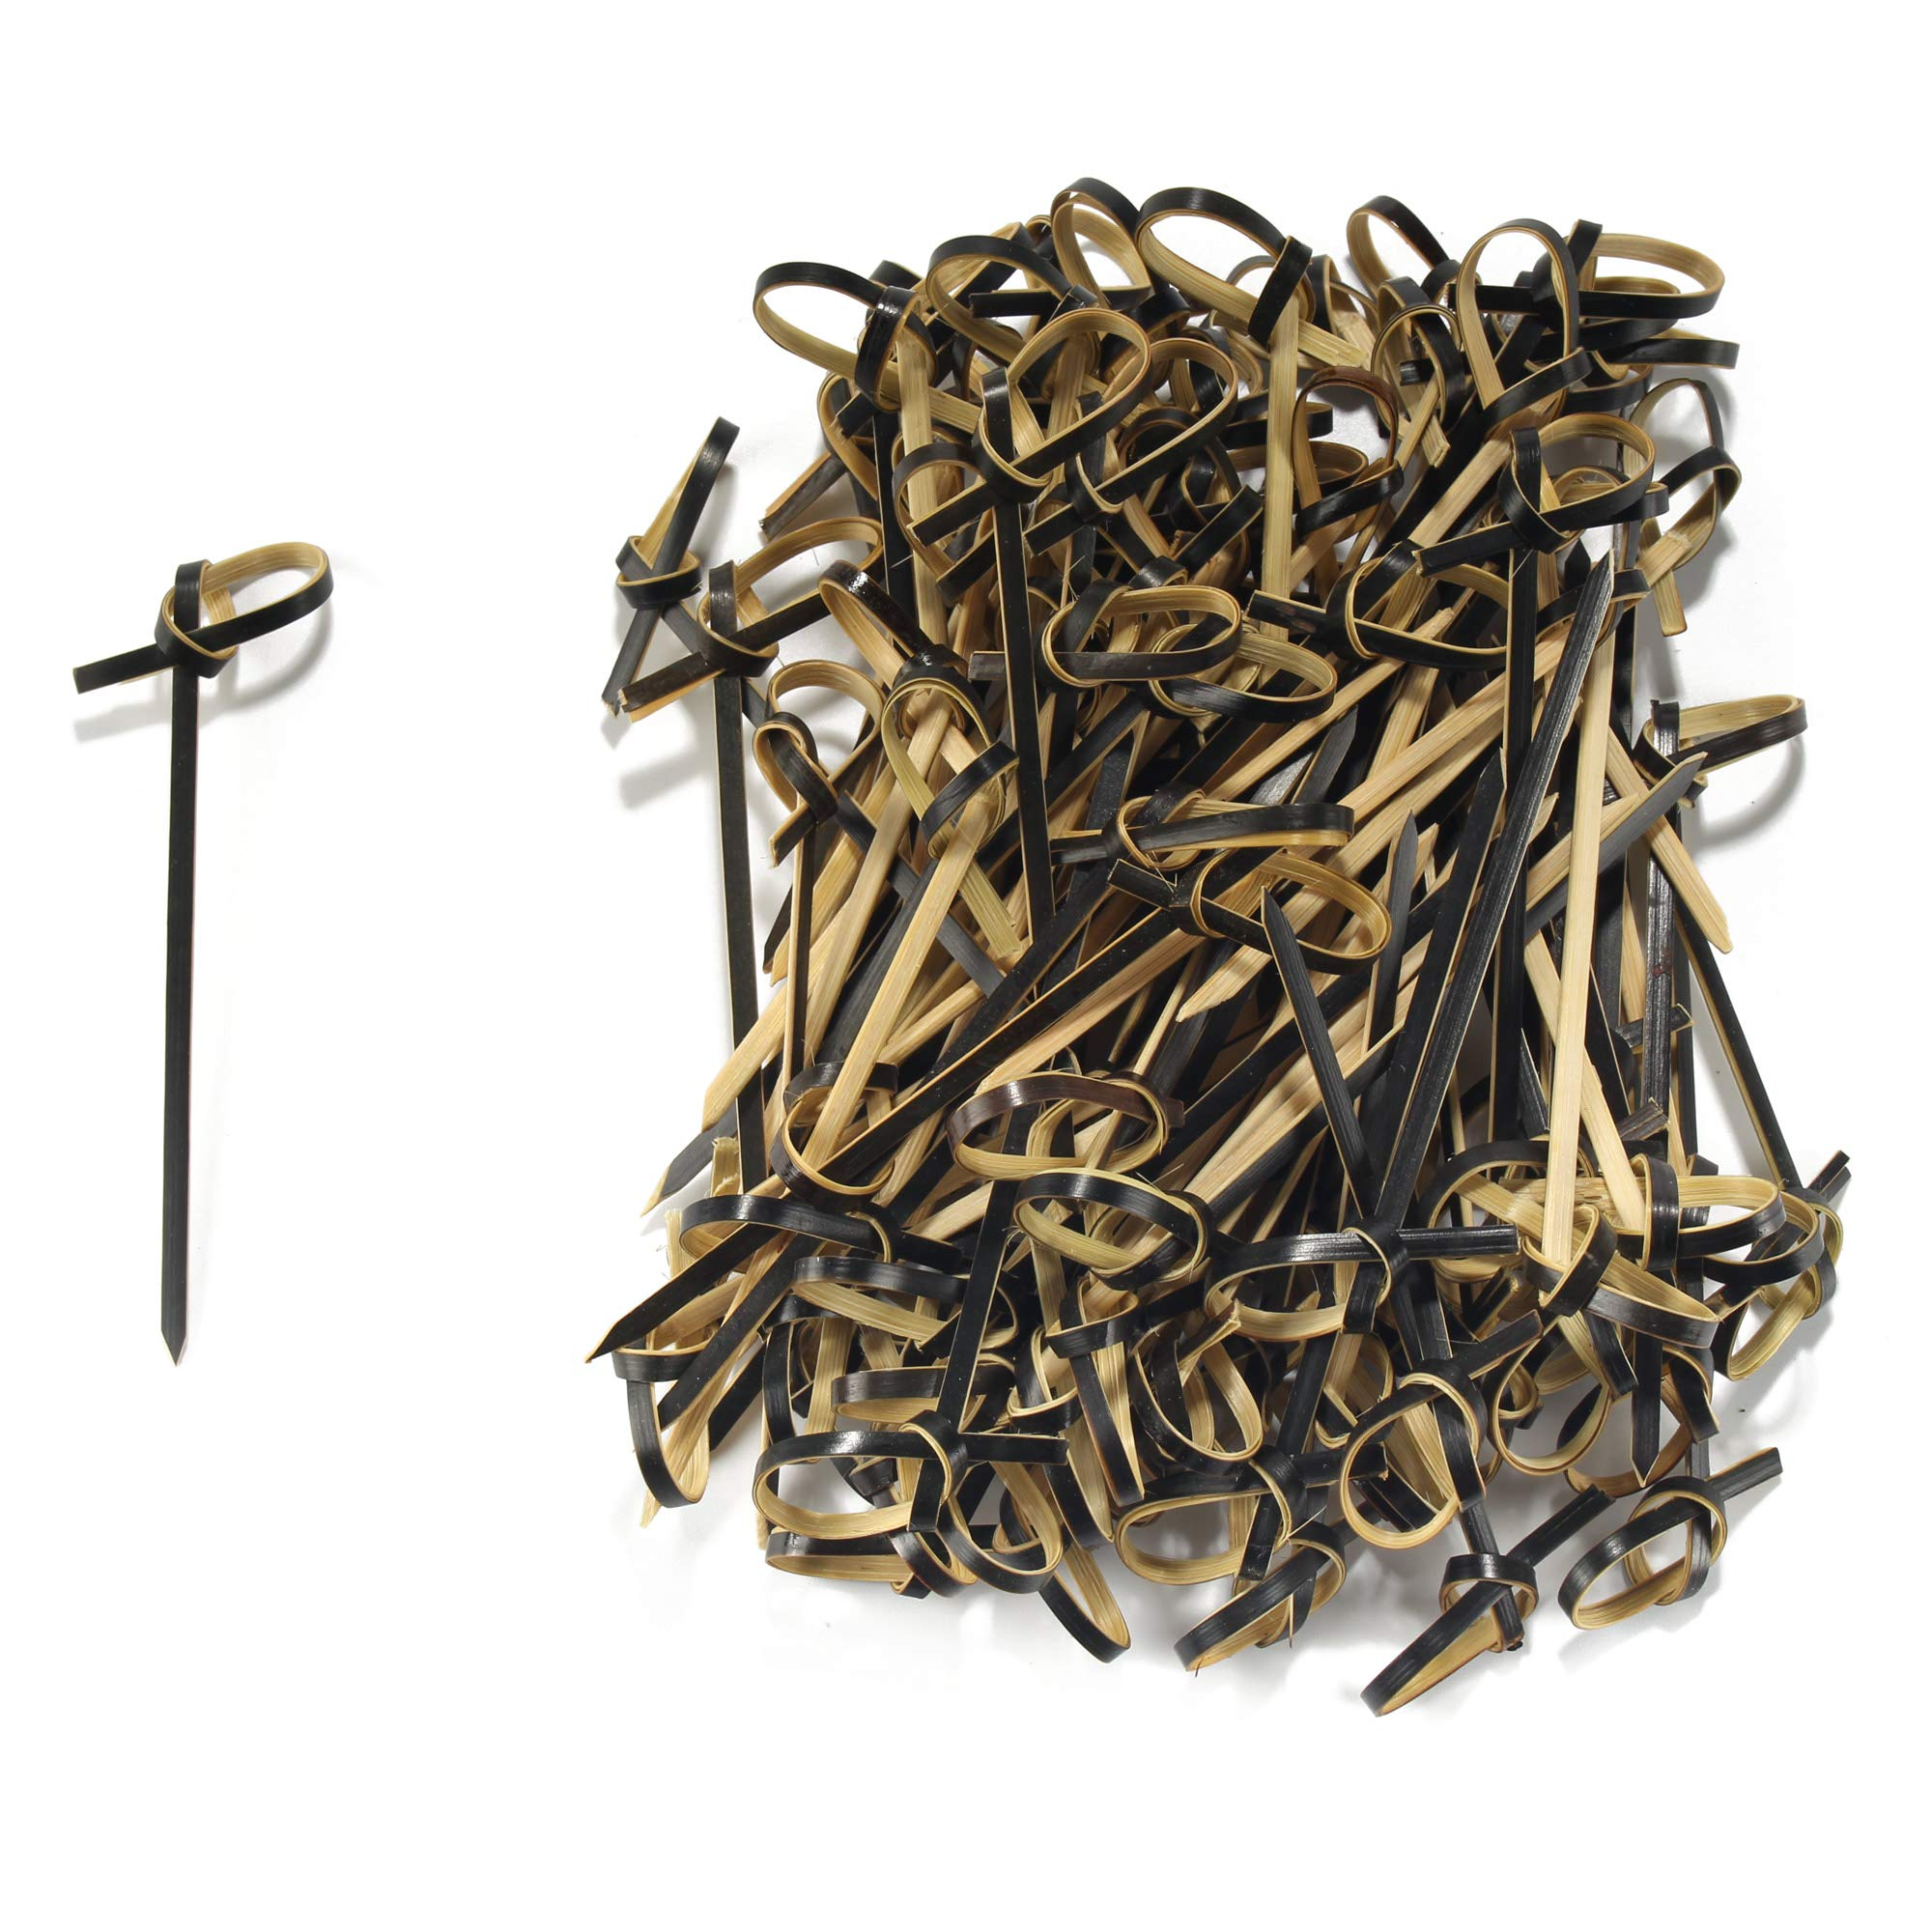 BambooMN 3.5'' Bamboo Black Knotted Knot Skewers Picks for Cocktails and Hors' D'oeuvres Party Supplies, 1000 Pieces